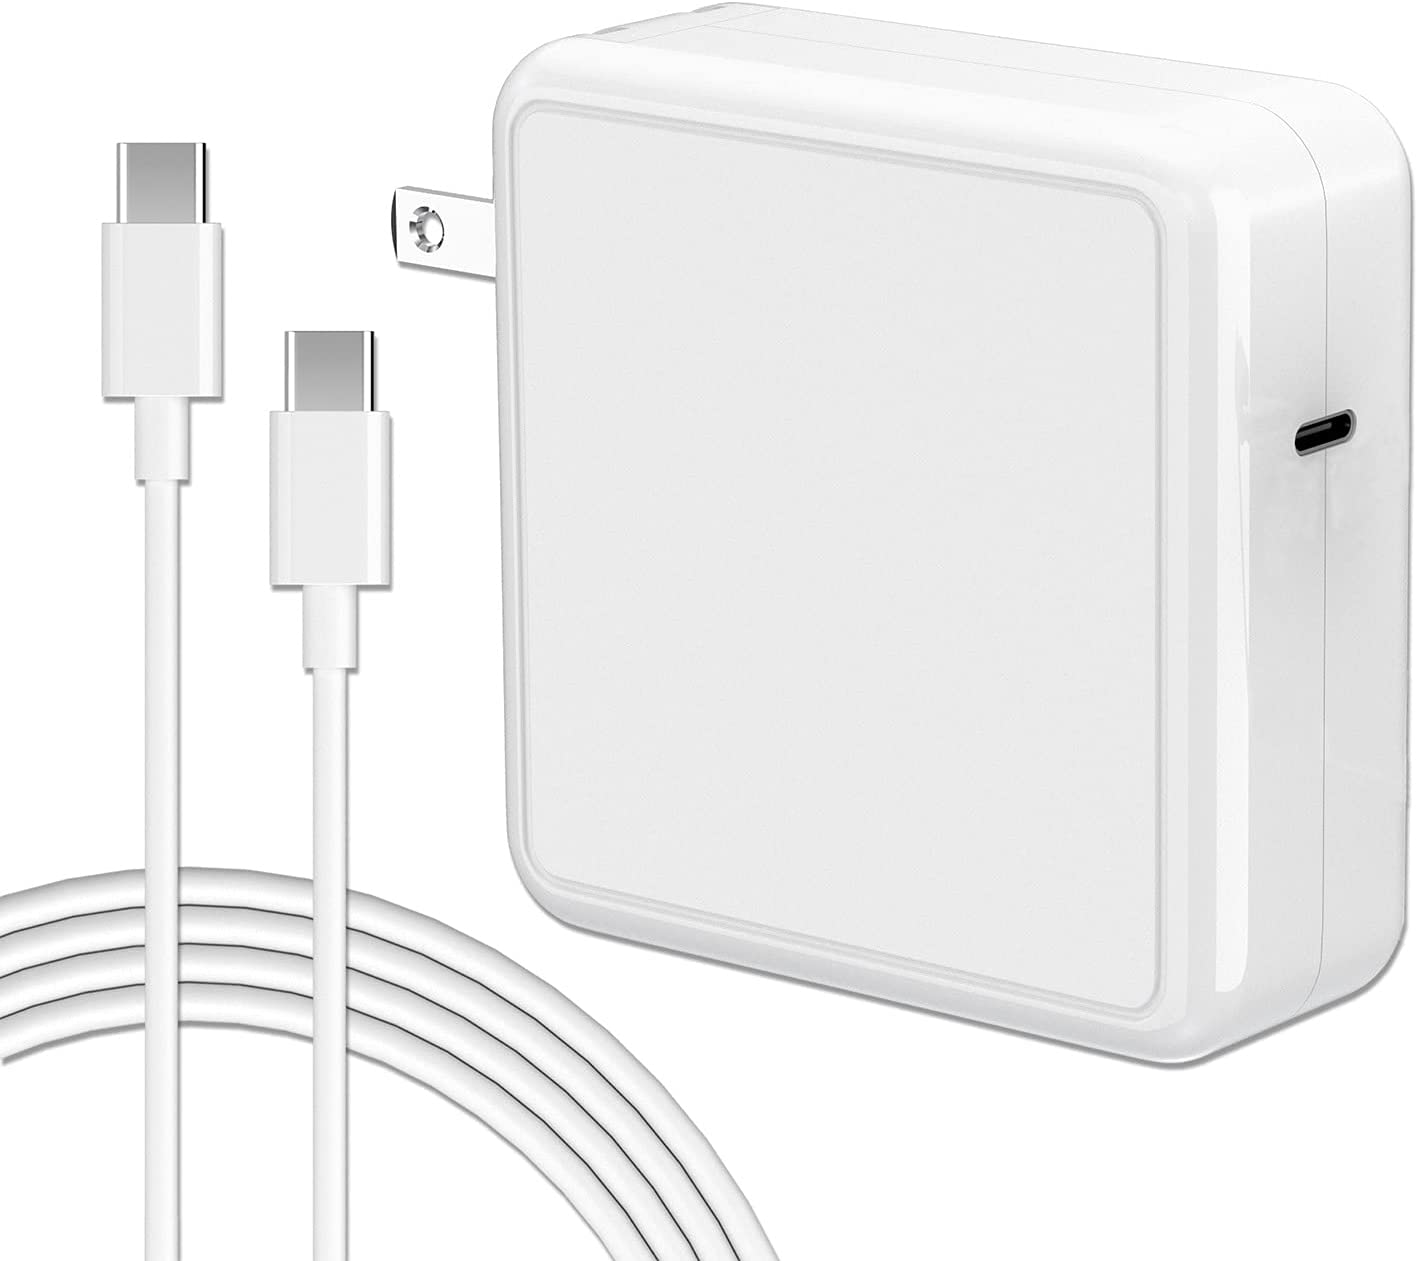 87W USB C Charger Power Adapter Compatible with Mac Book Pro 13 Inch 15 Inch 2020 2019 2018 Include Charge Cable…